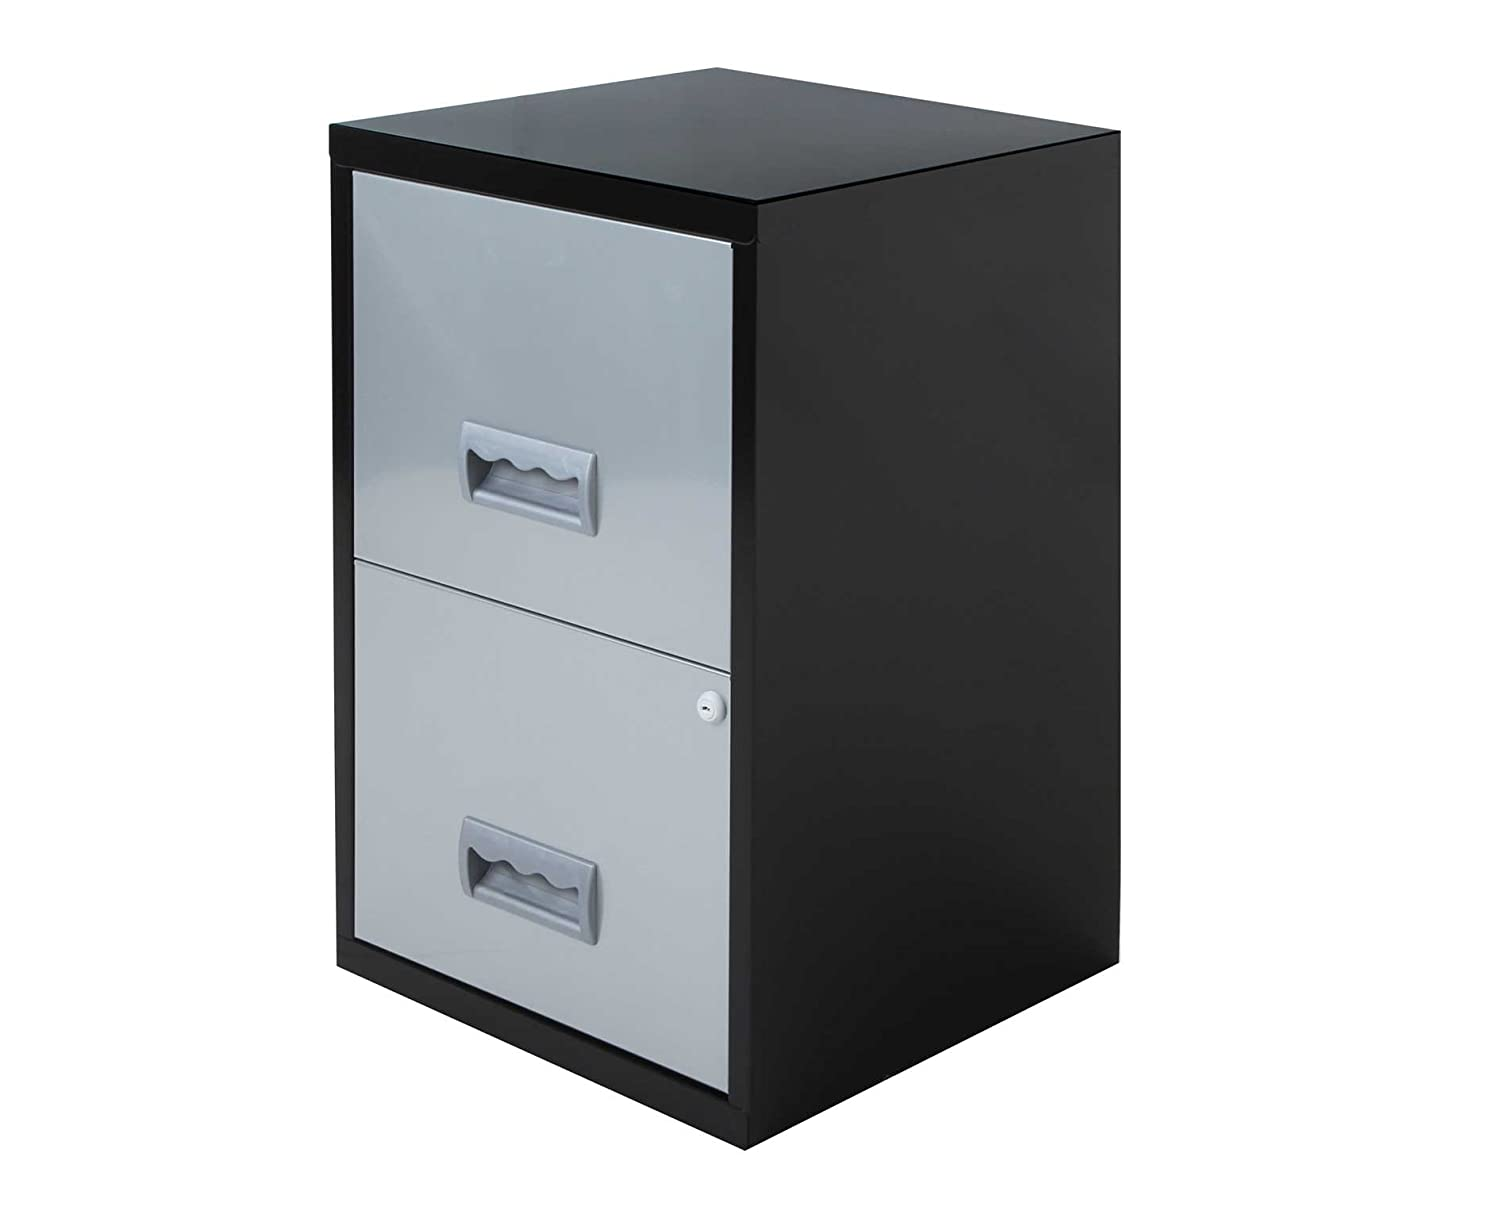 Pierre Henry 2 Drawer Maxi Filing Cabinet A4 - Color: Black/Silver 3219090950288